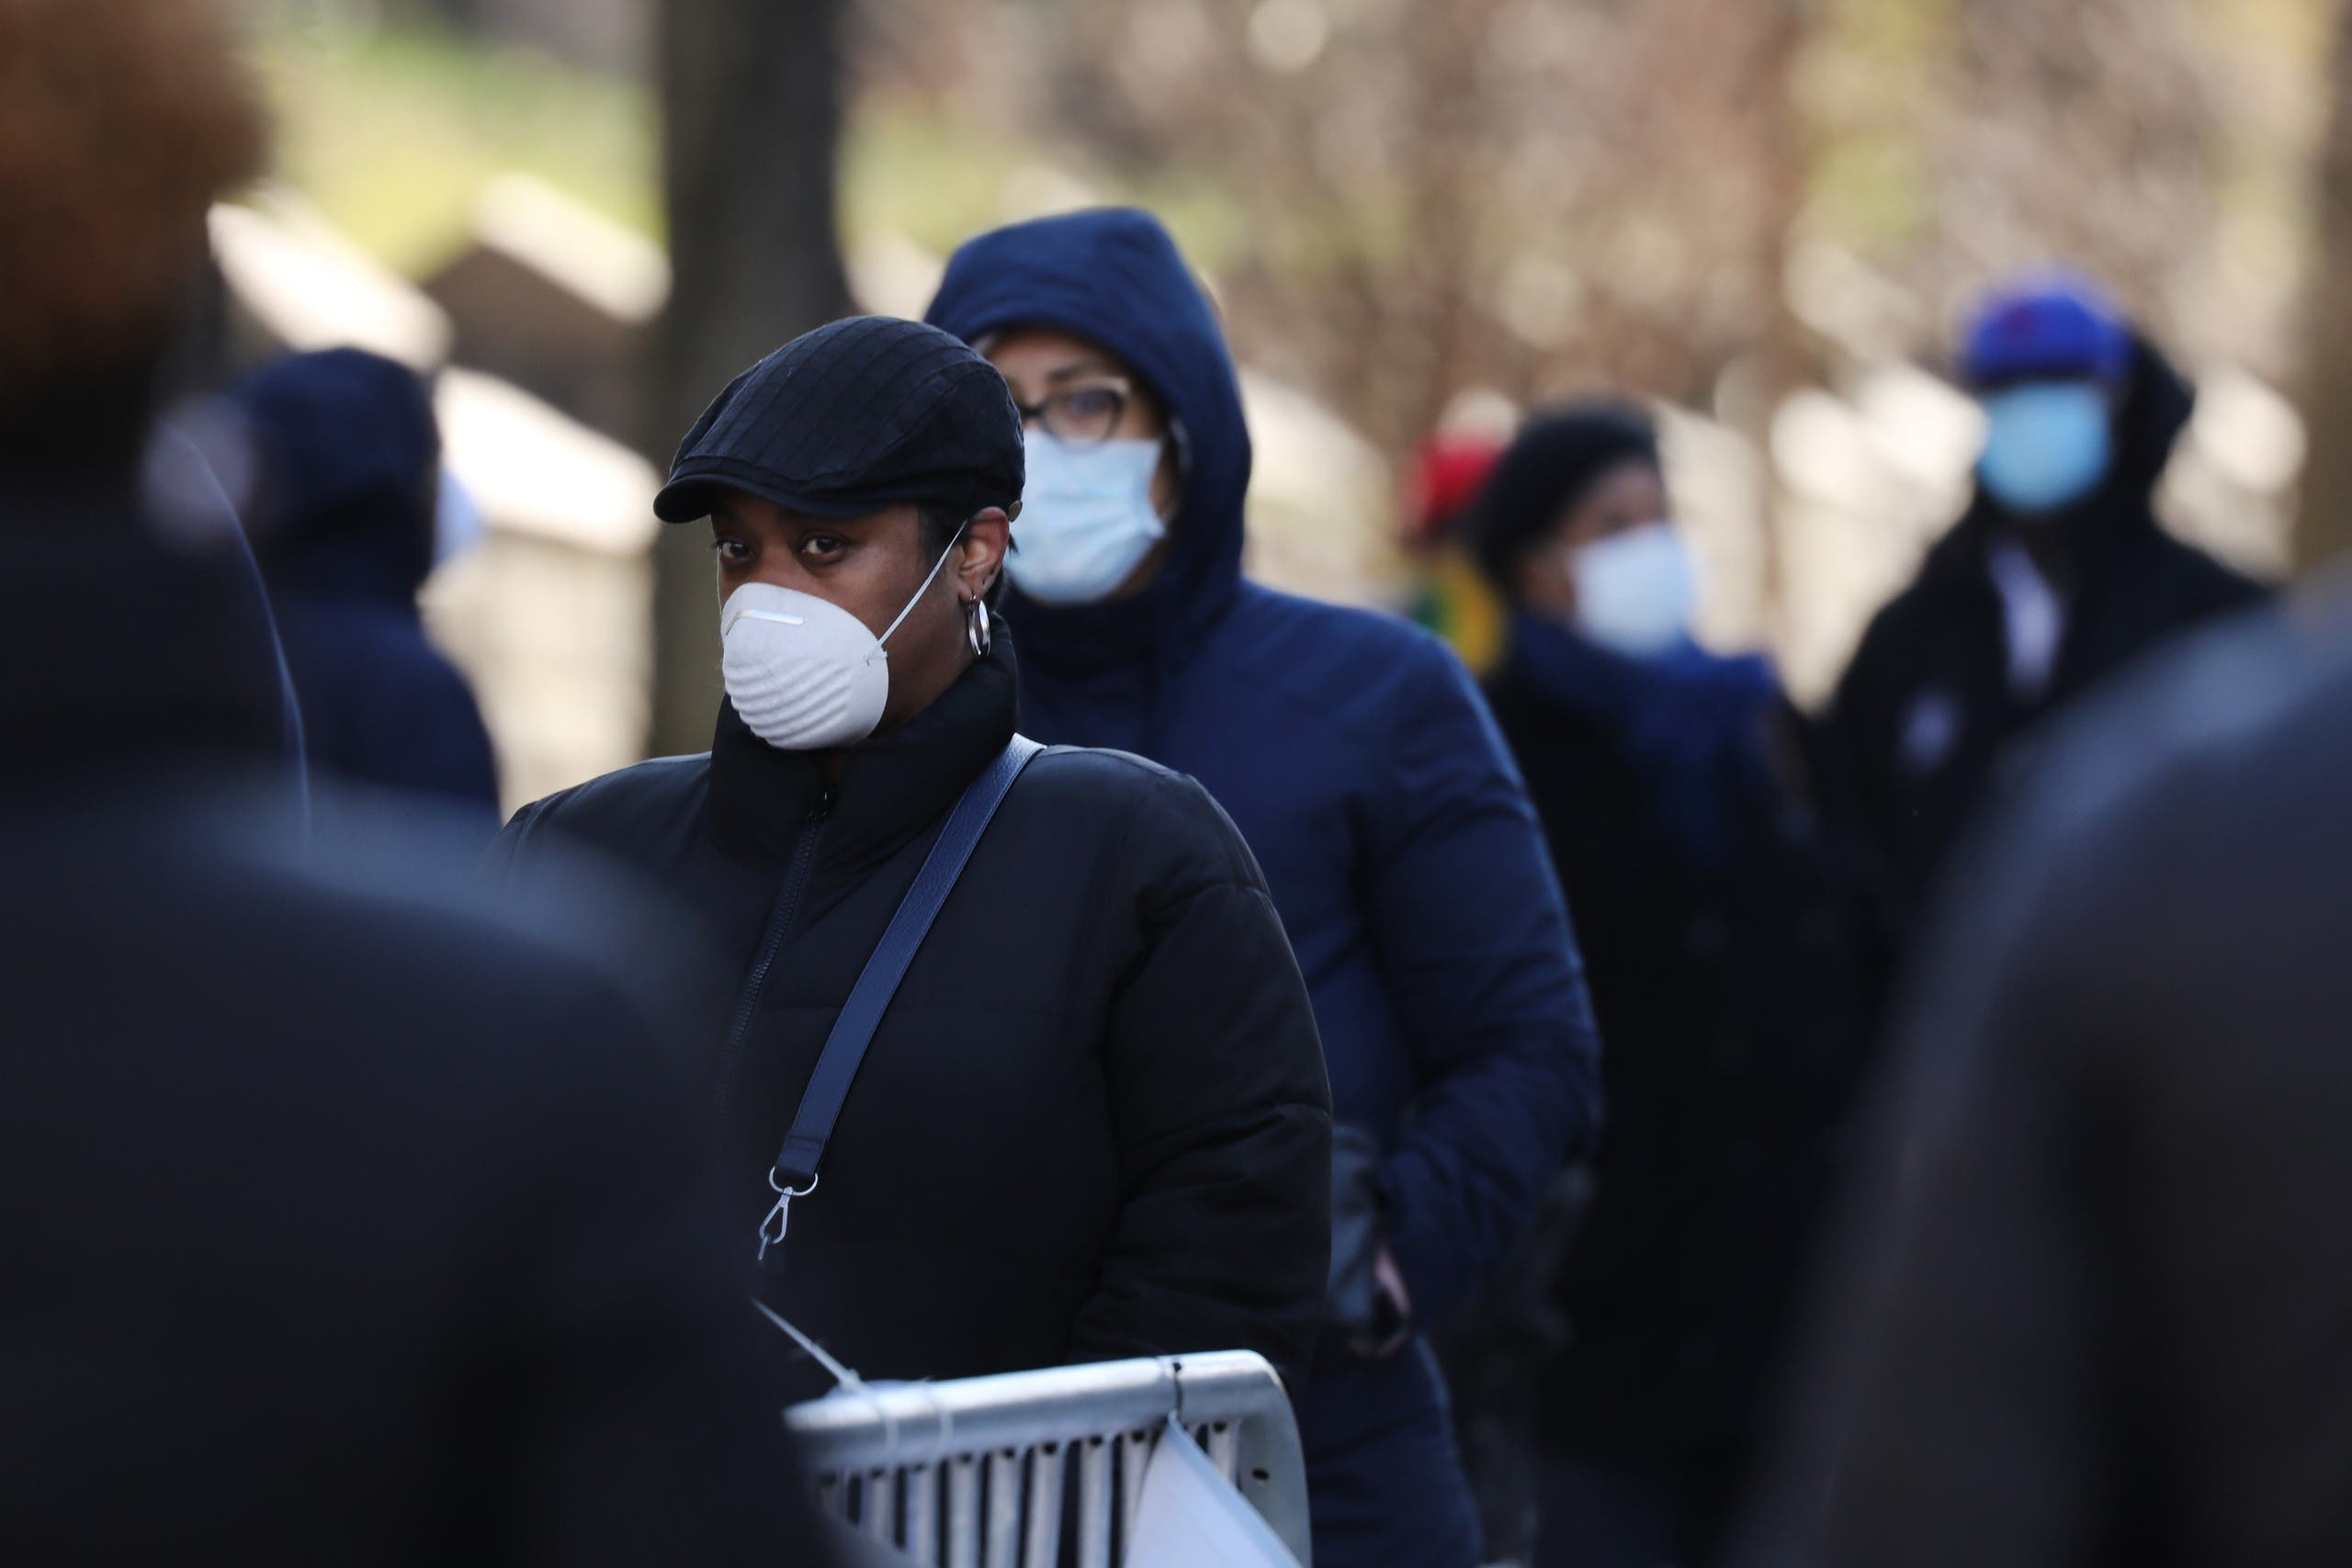 People wait to be tested for the COVID-19 outside of Brooklyn General Hospital on April 01, 2020 in New York City. (AFP)